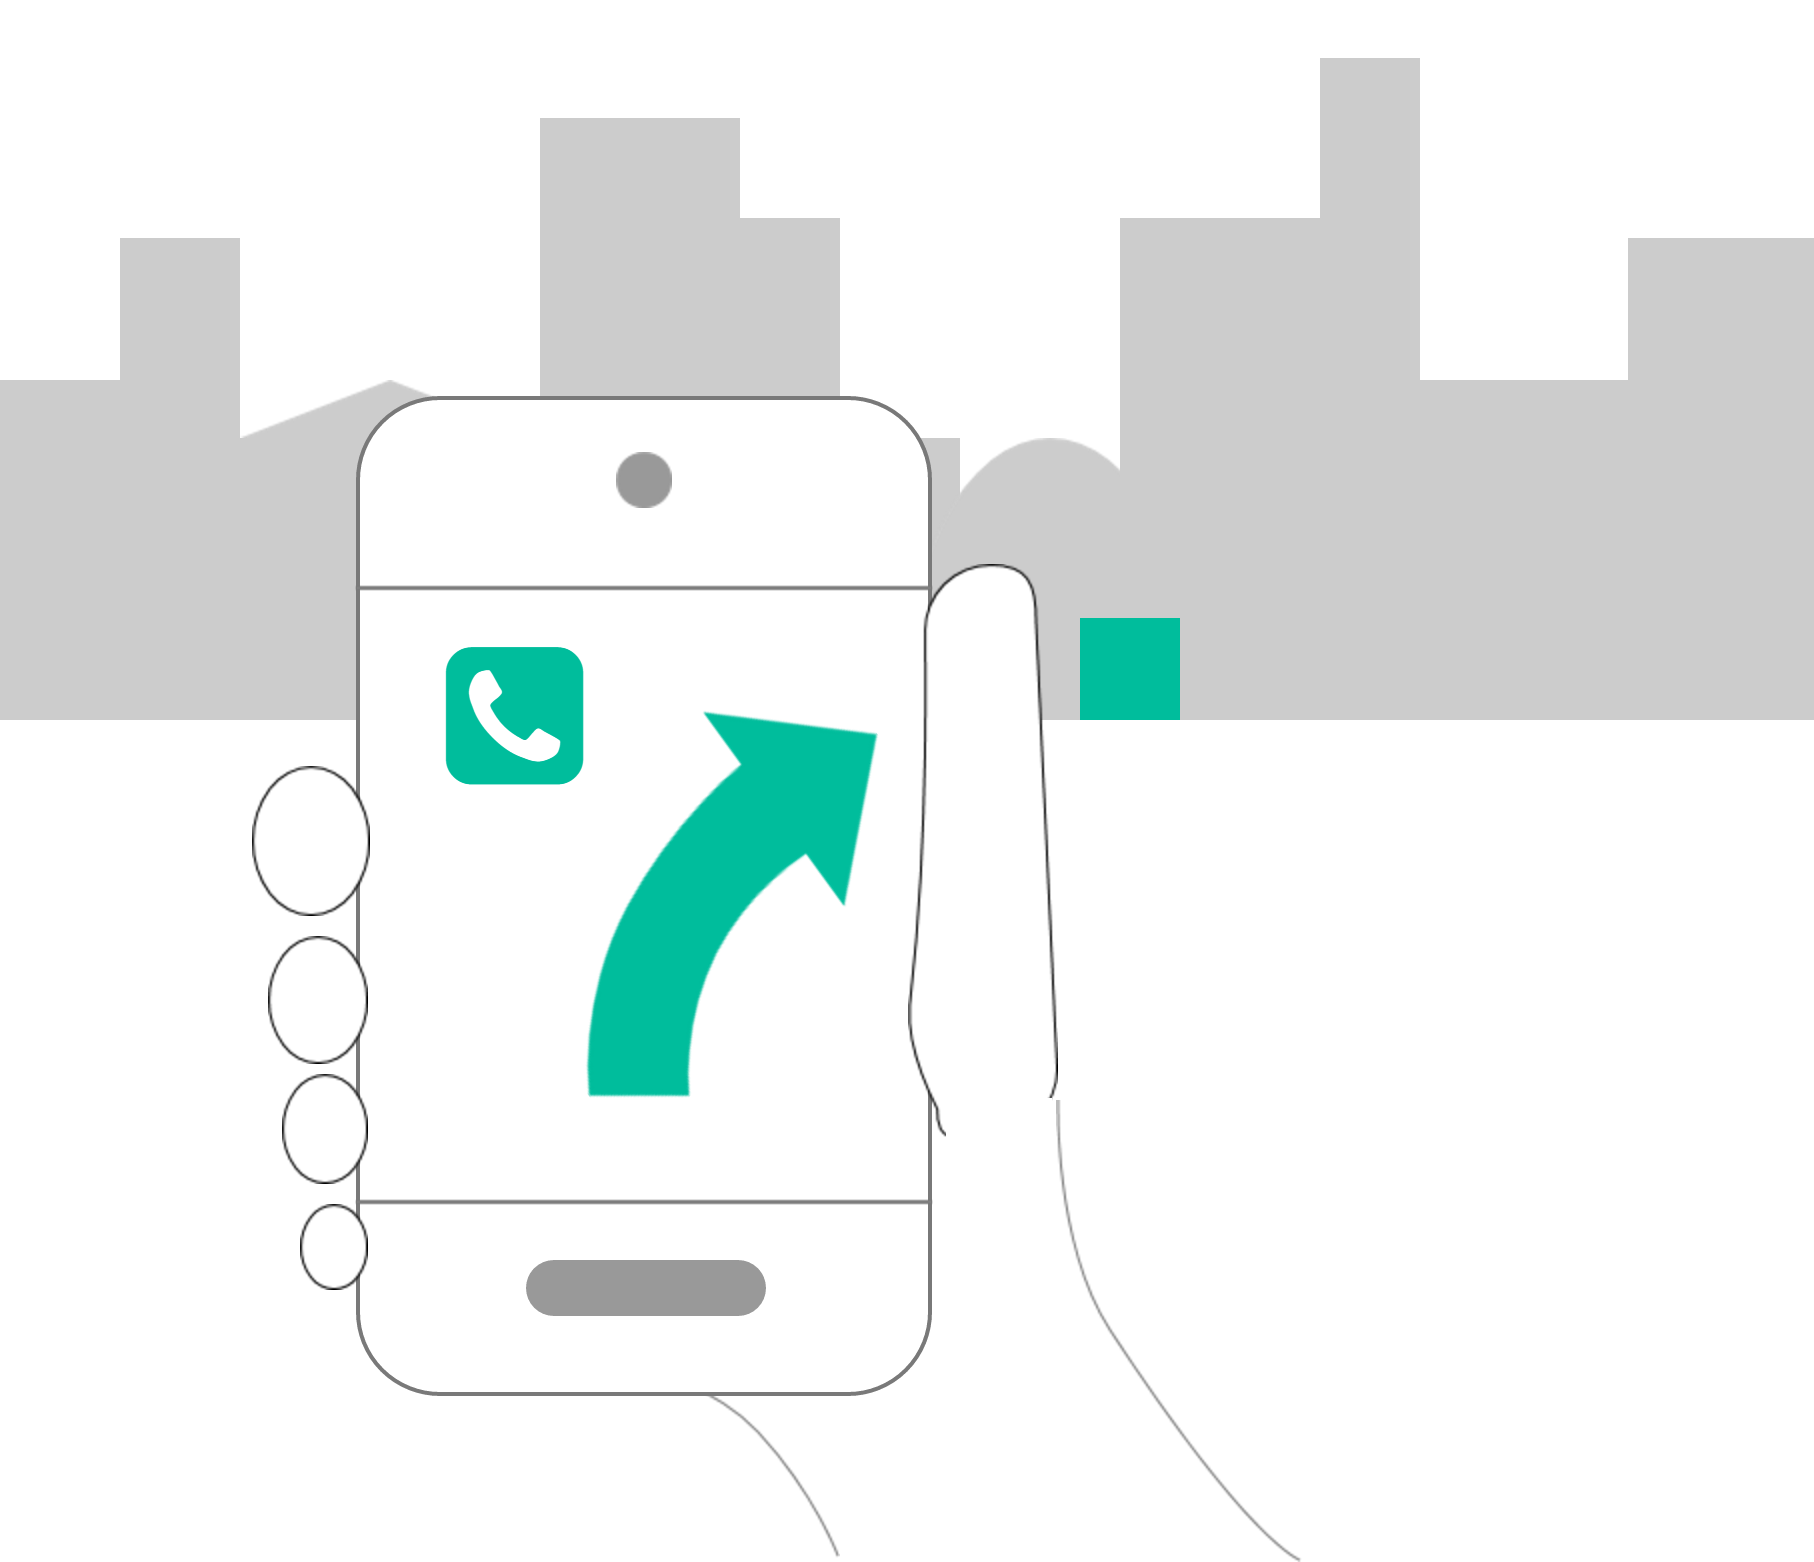 Mobile UX: highlight location and contact